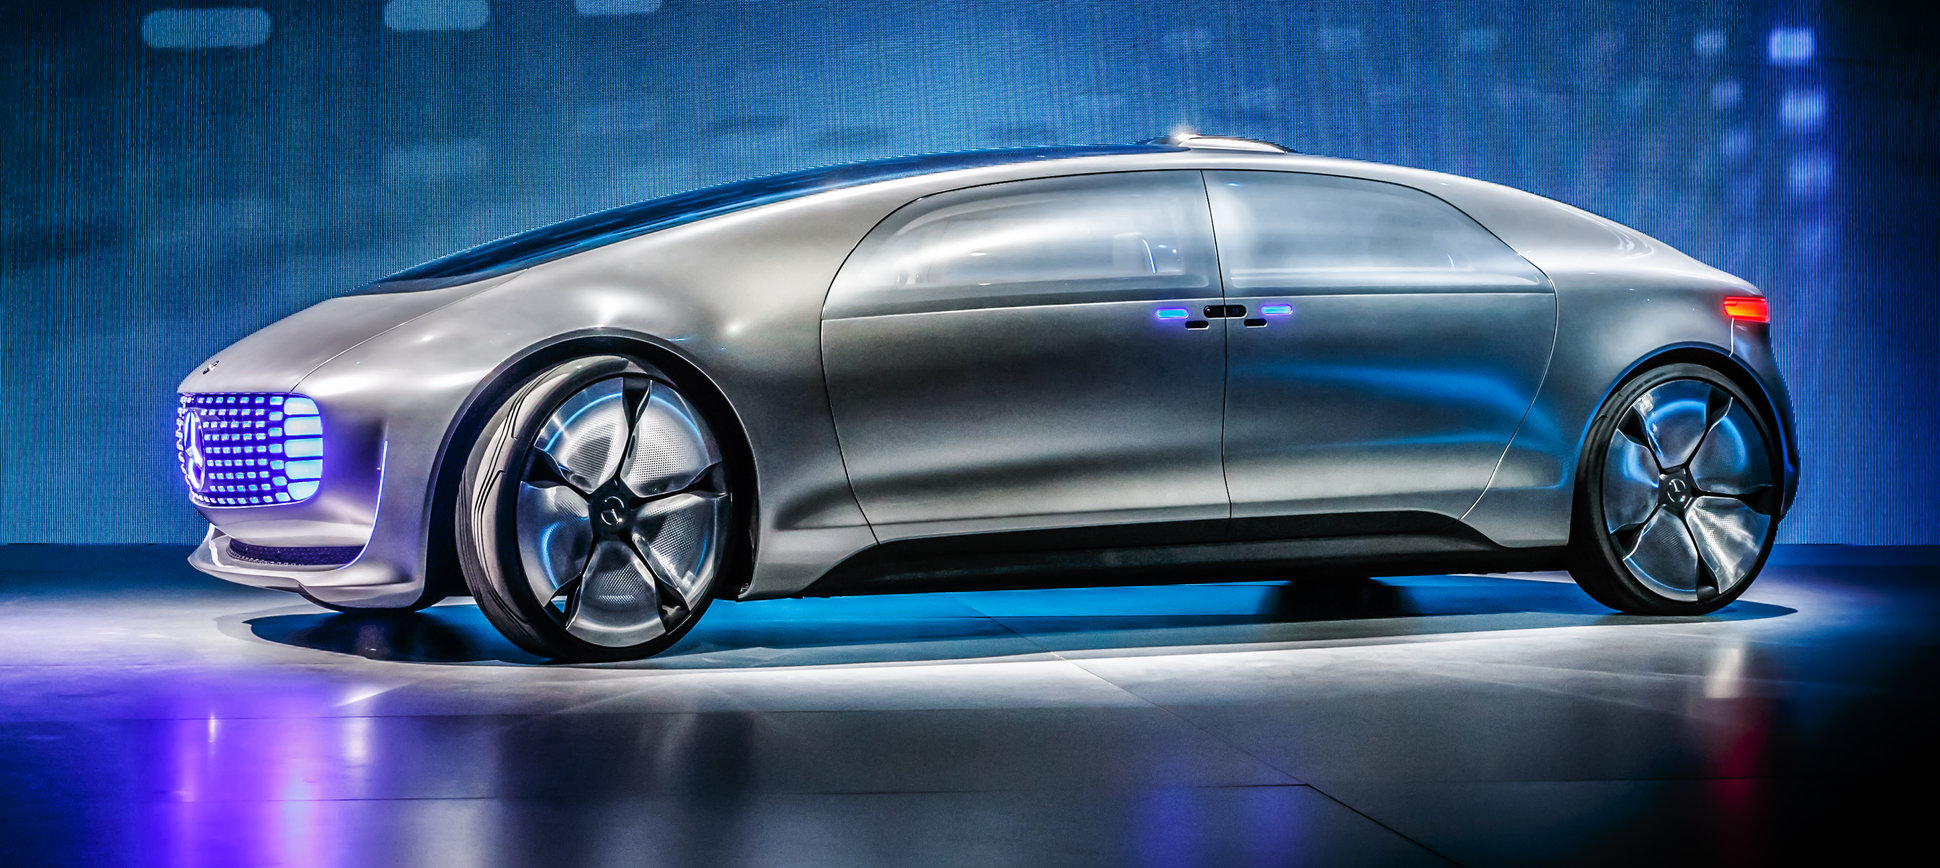 Autonomus Cars Gain Powerful Ally in The US Government